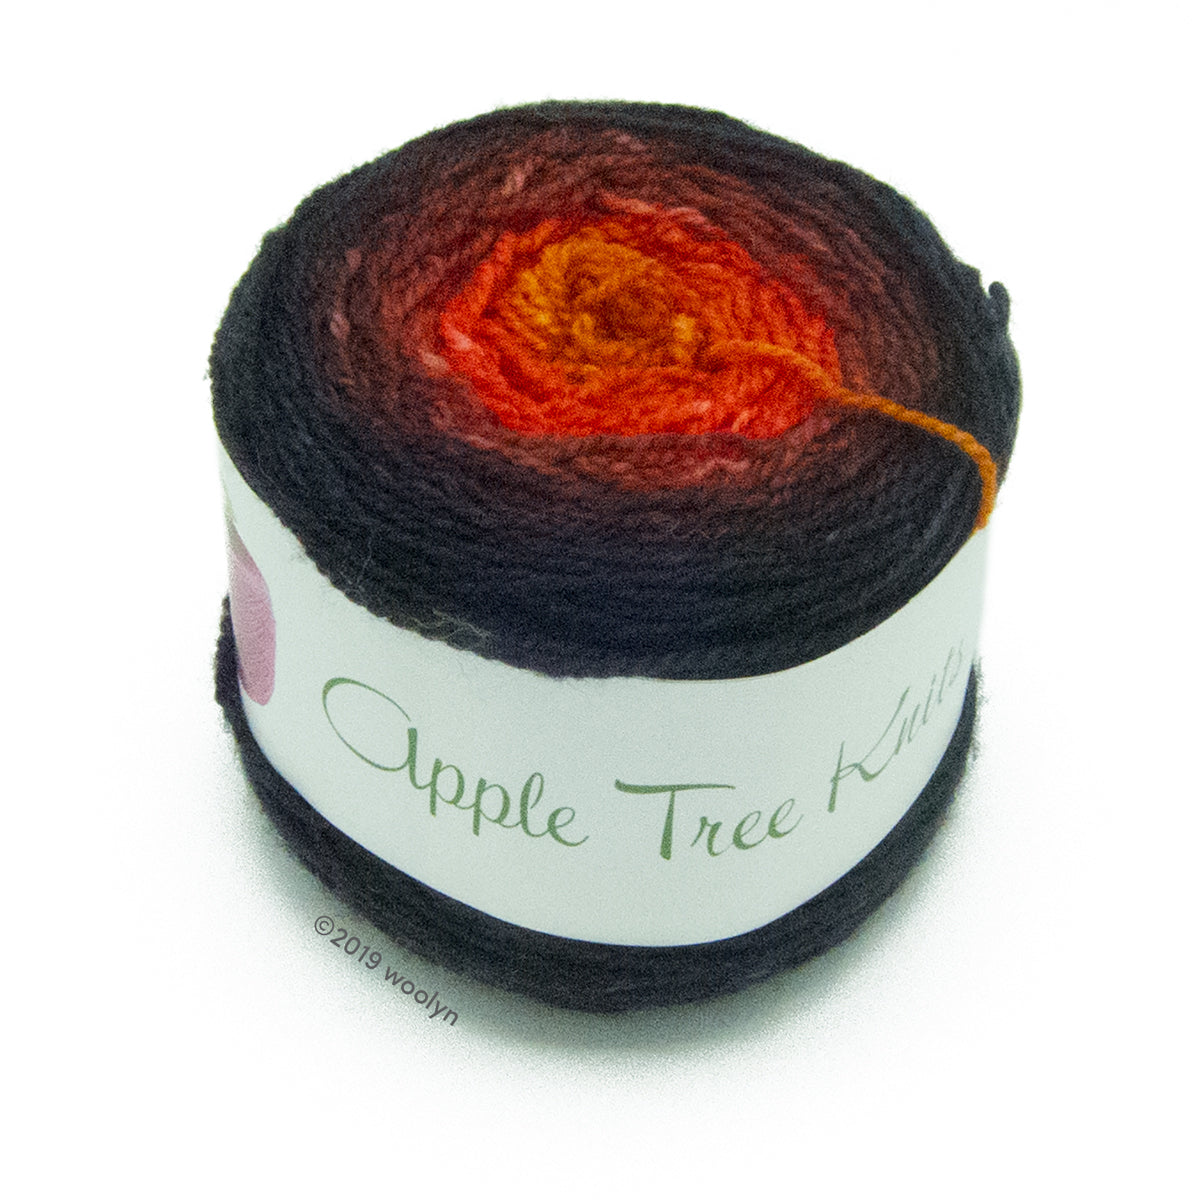 A wound cake of hand dyed fingering weight yarn from Apple Tree Knits..  Yarn is a gradient from black to brown to red to dark orange.